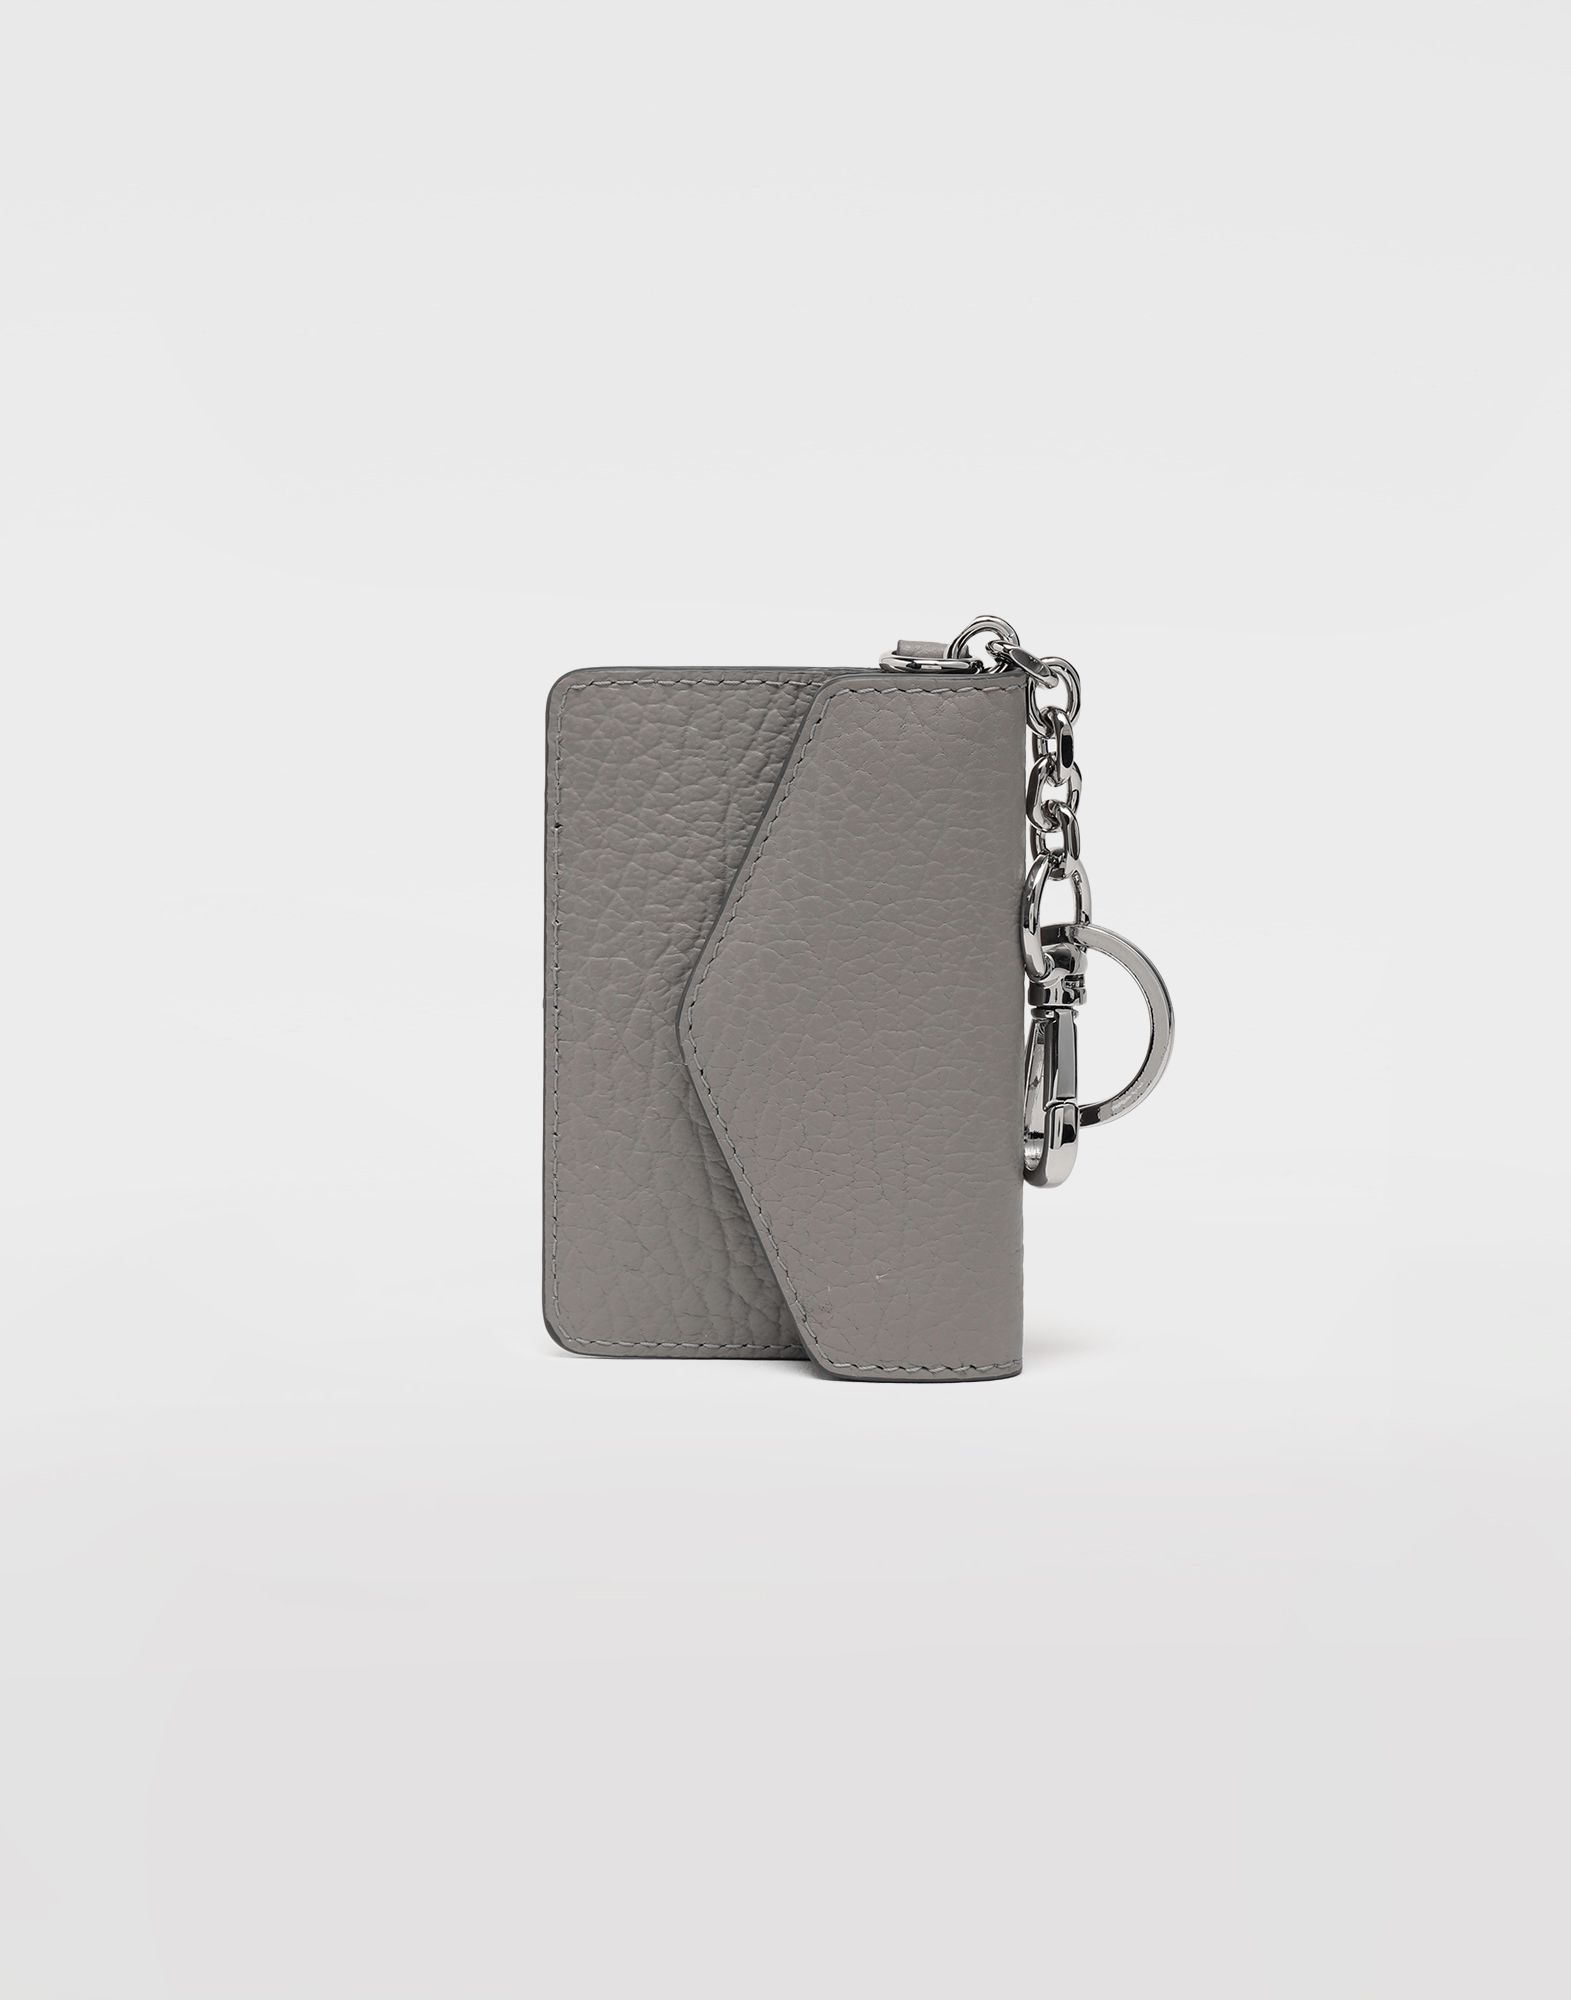 MAISON MARGIELA Leather keyring wallet Wallets Woman f